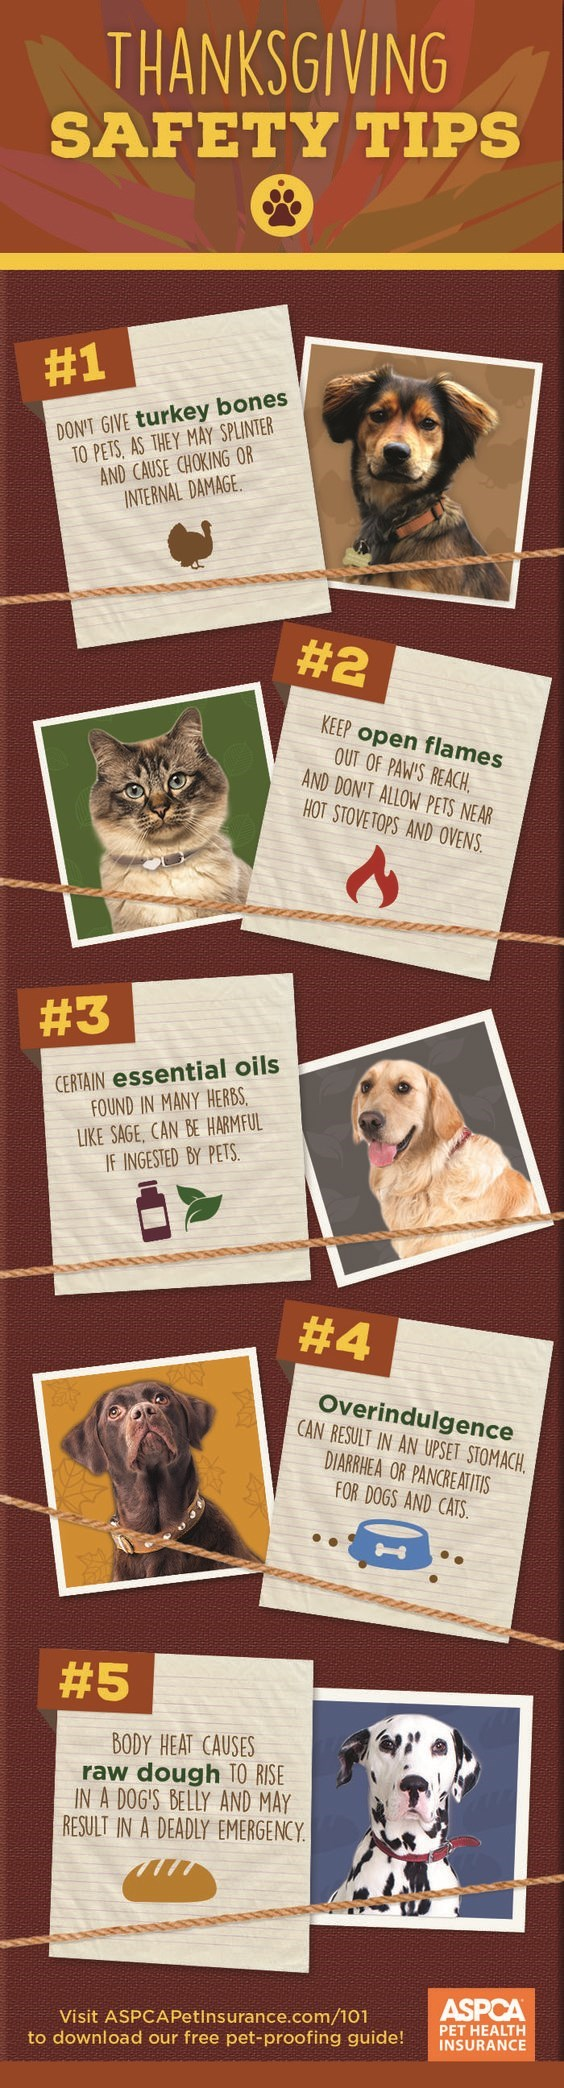 Cat - THANKSGIVING SAFETY TIPS #1 DON'T GIVE turkey bones TO PETS, AS THEY MAY SPLINTER AND CAUSE CHOKING OR INTERNAL DAMAGE #2 KEEP open flames OUT OF PAW'S REACH, AND DON'T ALLOW PETS NEAR HOT STOVETOPS AND OVENS # 3 CERTAIN essential oils FOUND IN MANY HERBS LIKE SAGE, CAN BE HARMFUL IF INGESTED BY PETS #4 Overindulgence CAN RESULT IN AN UPSET STOMACH. DIARRHEA OR PANCREATITIS FOR DOGS AND CATS #5 ΒΟDΥ HEA (AUSES raw dough TO RISE IN A DOG'S BELLY AND MAY RESULT IN A DEADLY EMERGENCY ASPCA Vi